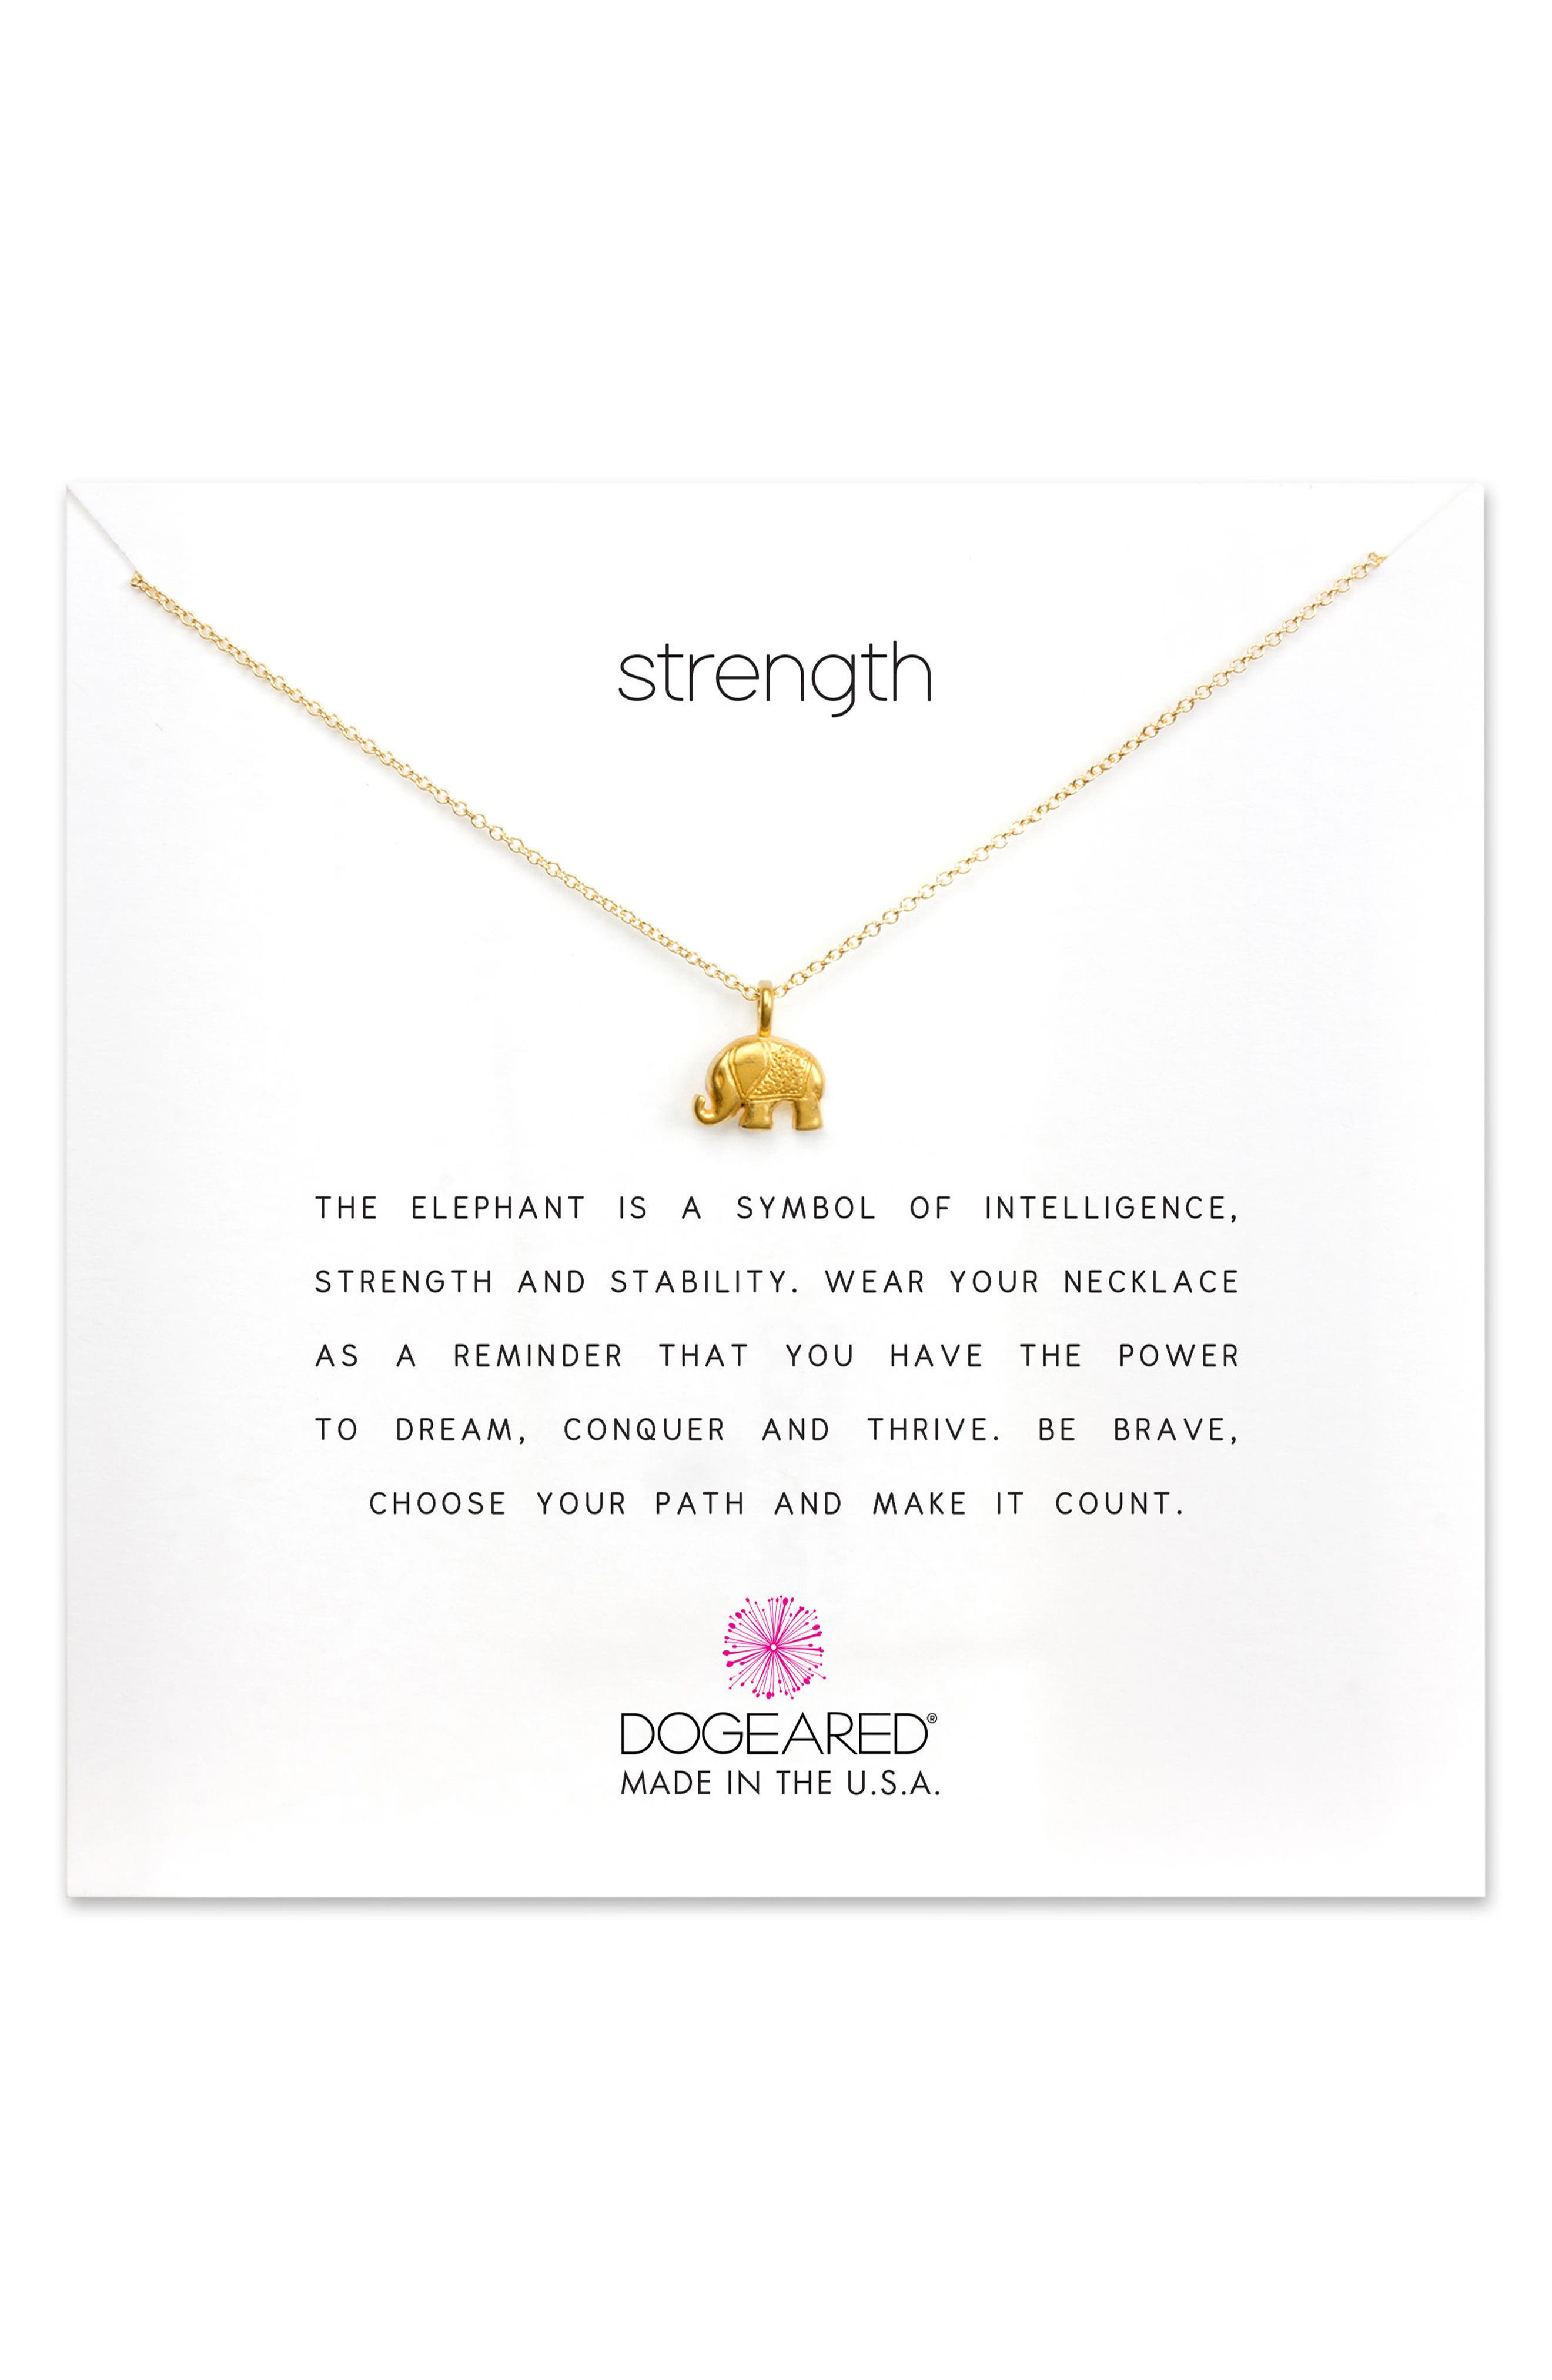 DOGEARED Reminder - Strength Pendant Necklace